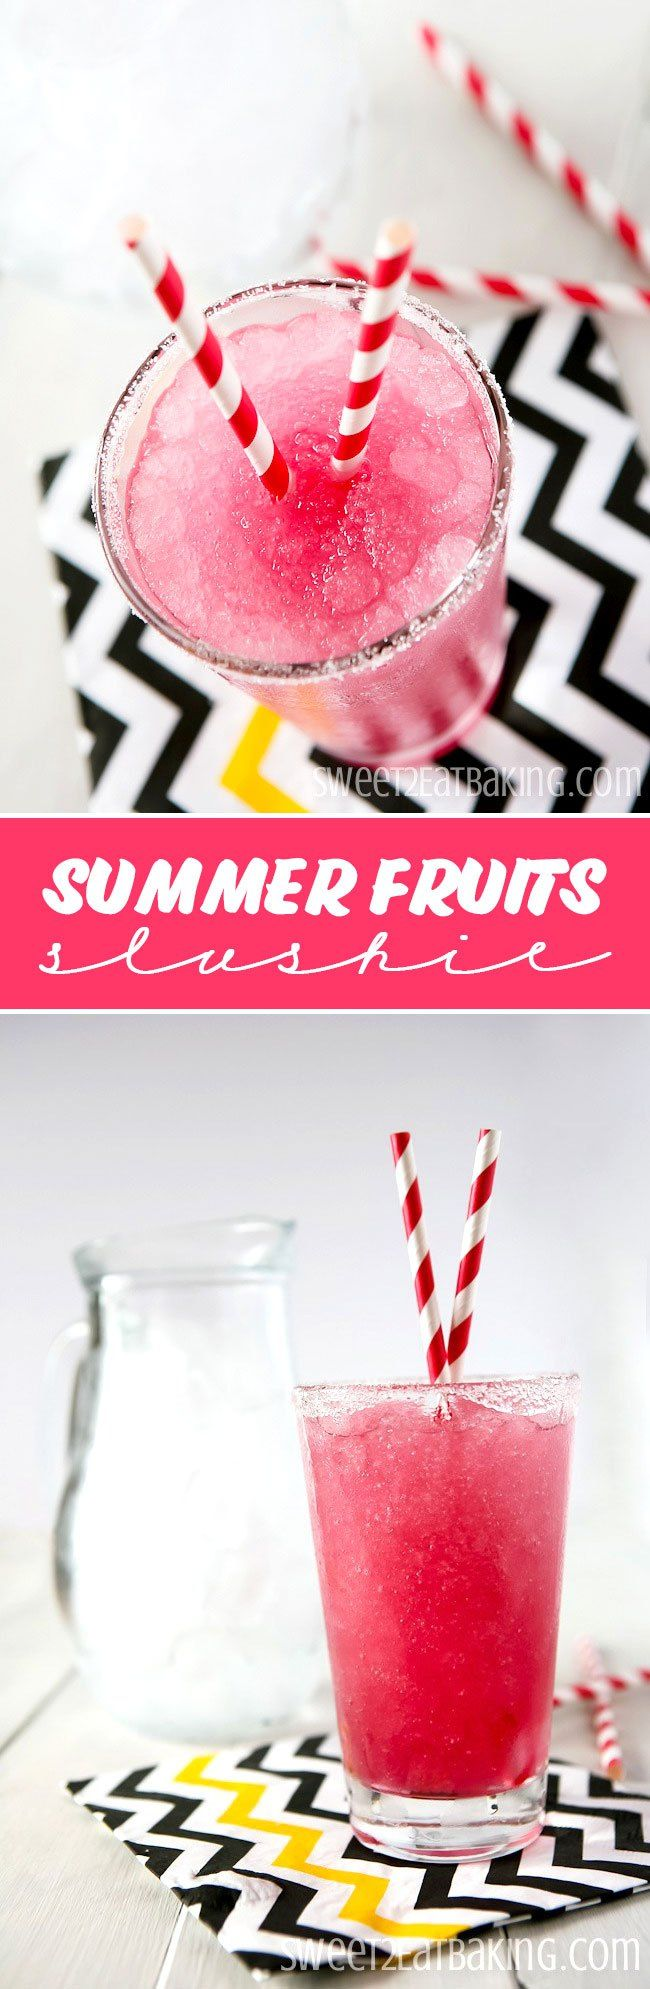 Summer Fruits Slushie Recipe by Sweet2Eat Baking | This summer fruits flavoured slushie is the perfect way to beat the heat this summer. Quick and easy to make at home. You and your kids will love these slushies!